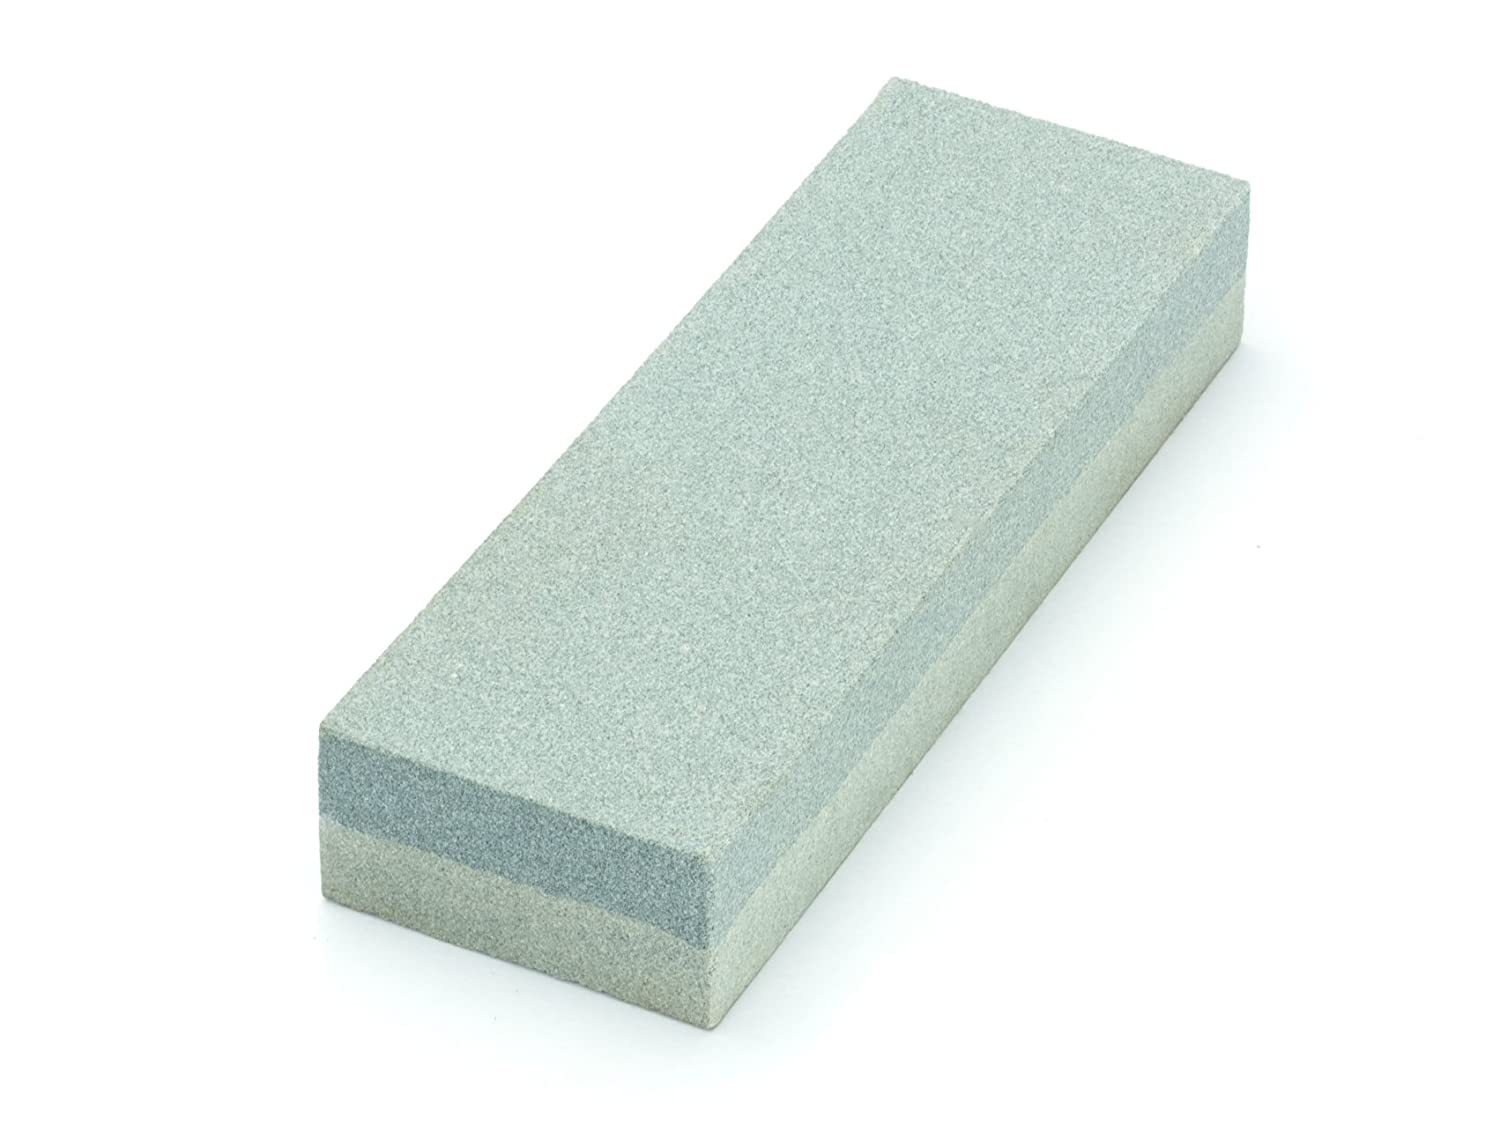 8 2 Sided KnBlade Sharpener Sharpening Stone 120 and 240 Grit ASR Outdoor SS6